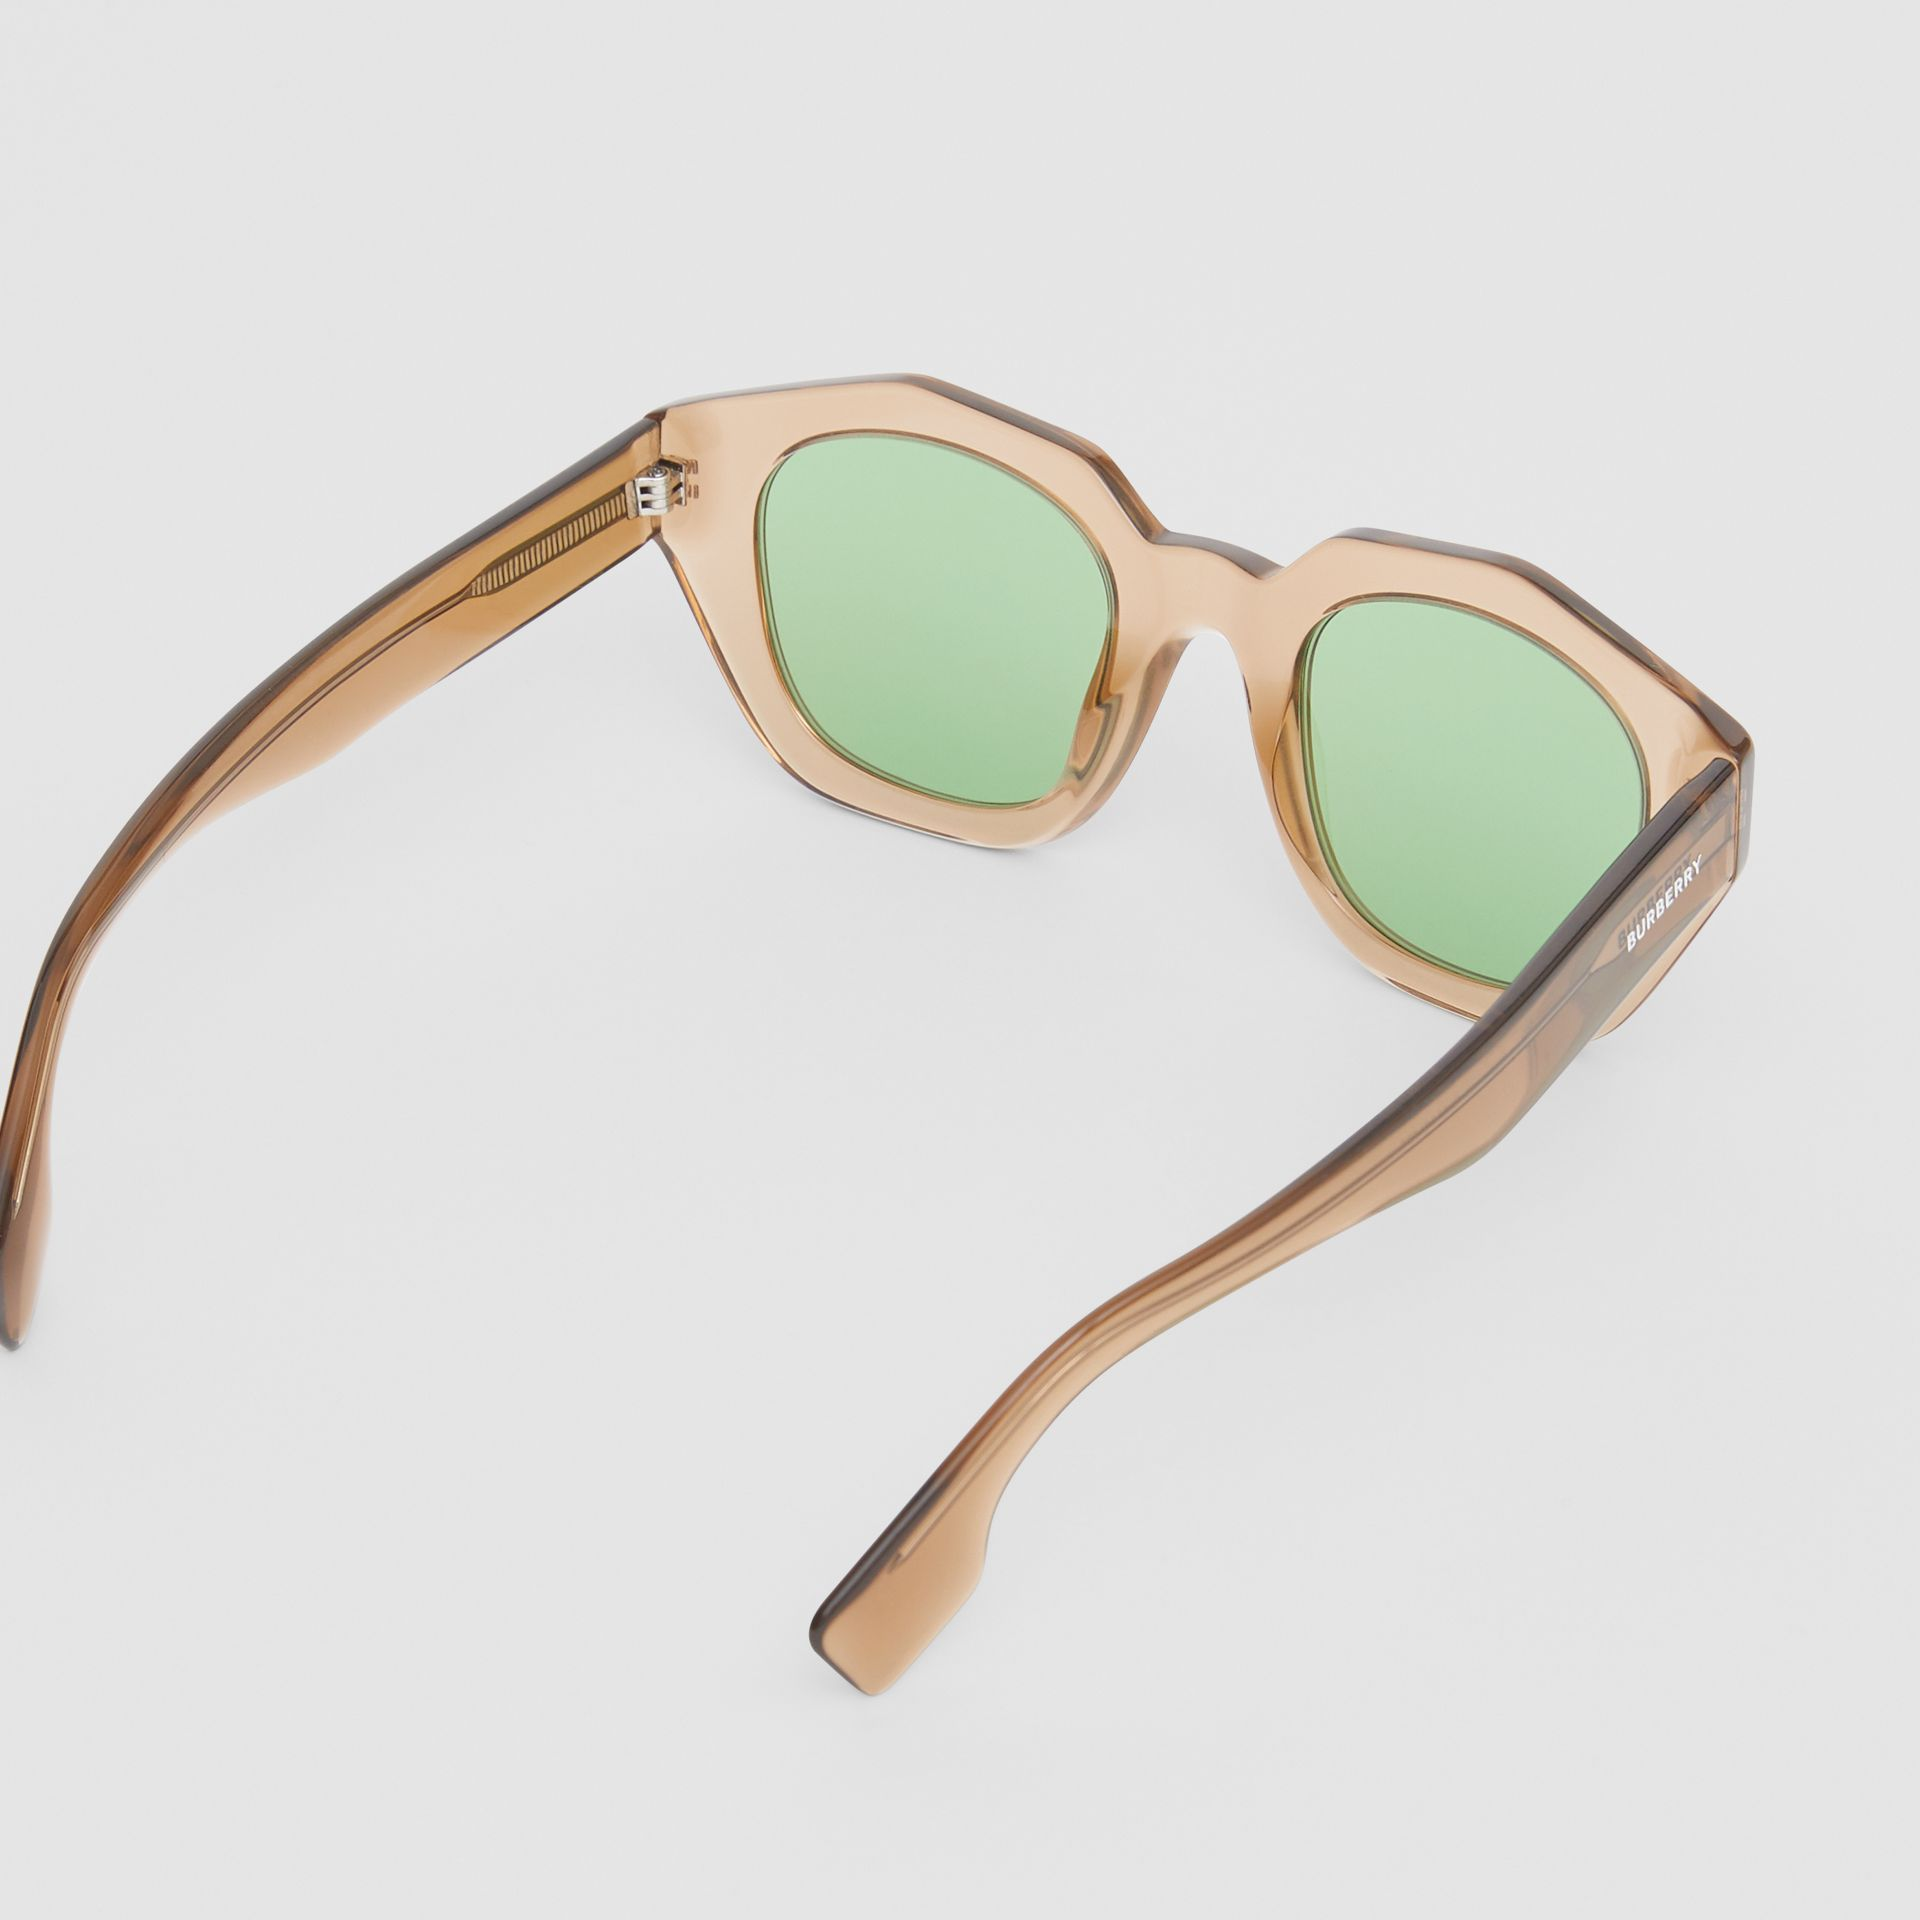 Geometric Frame Sunglasses in Brown - Women | Burberry - gallery image 3